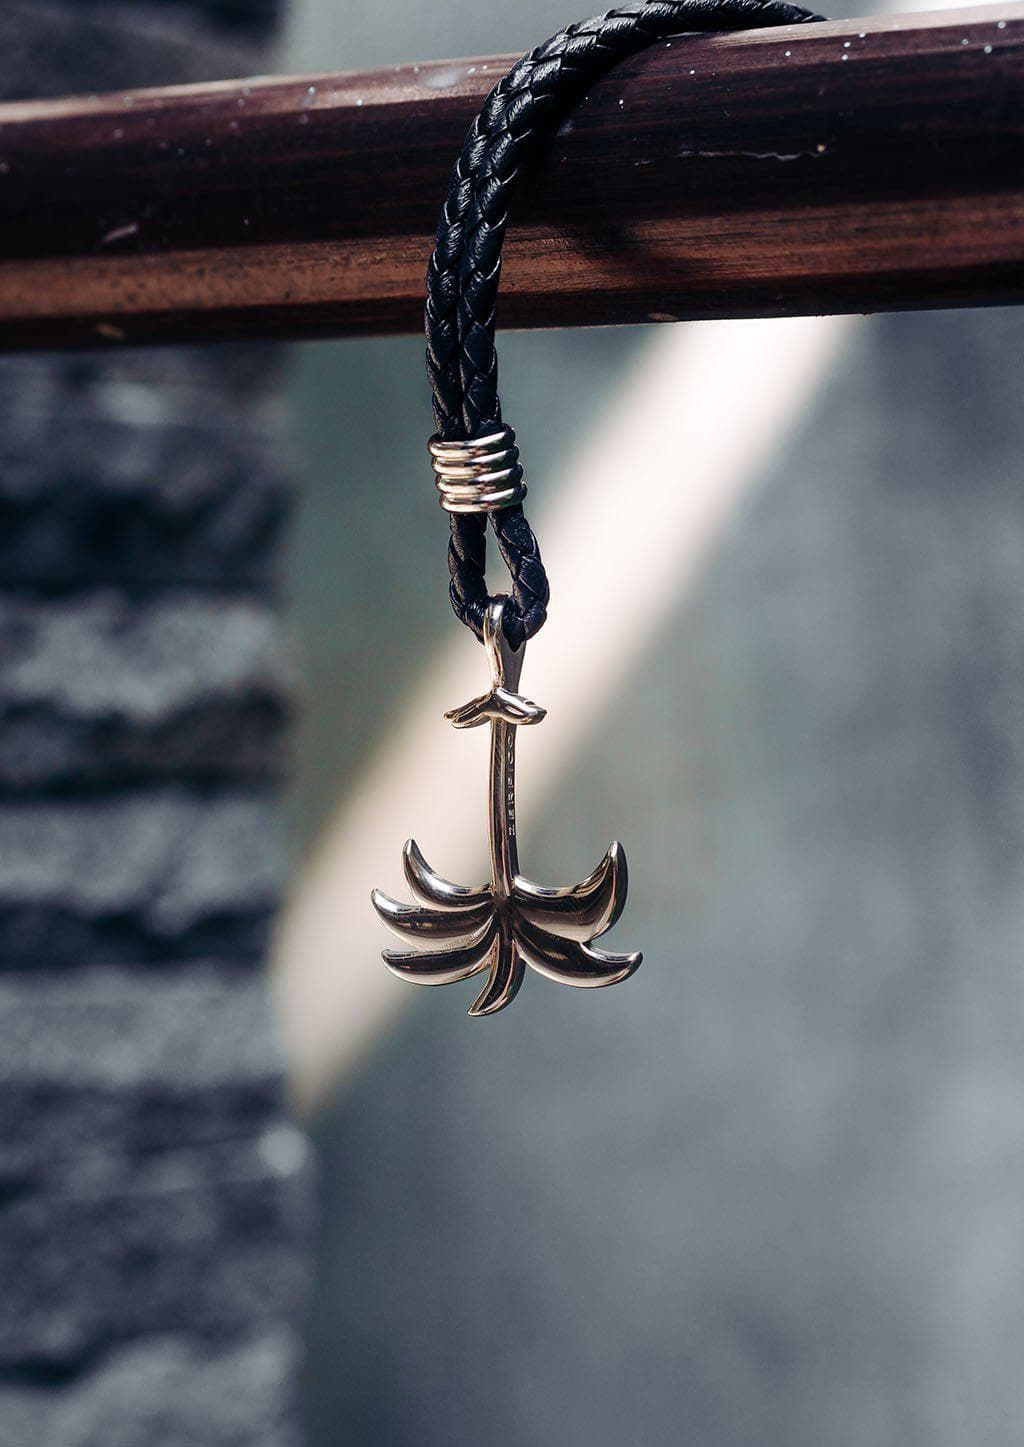 Twilight Silver - Palm anchor bracelet with black leather. Outdoor shoot.